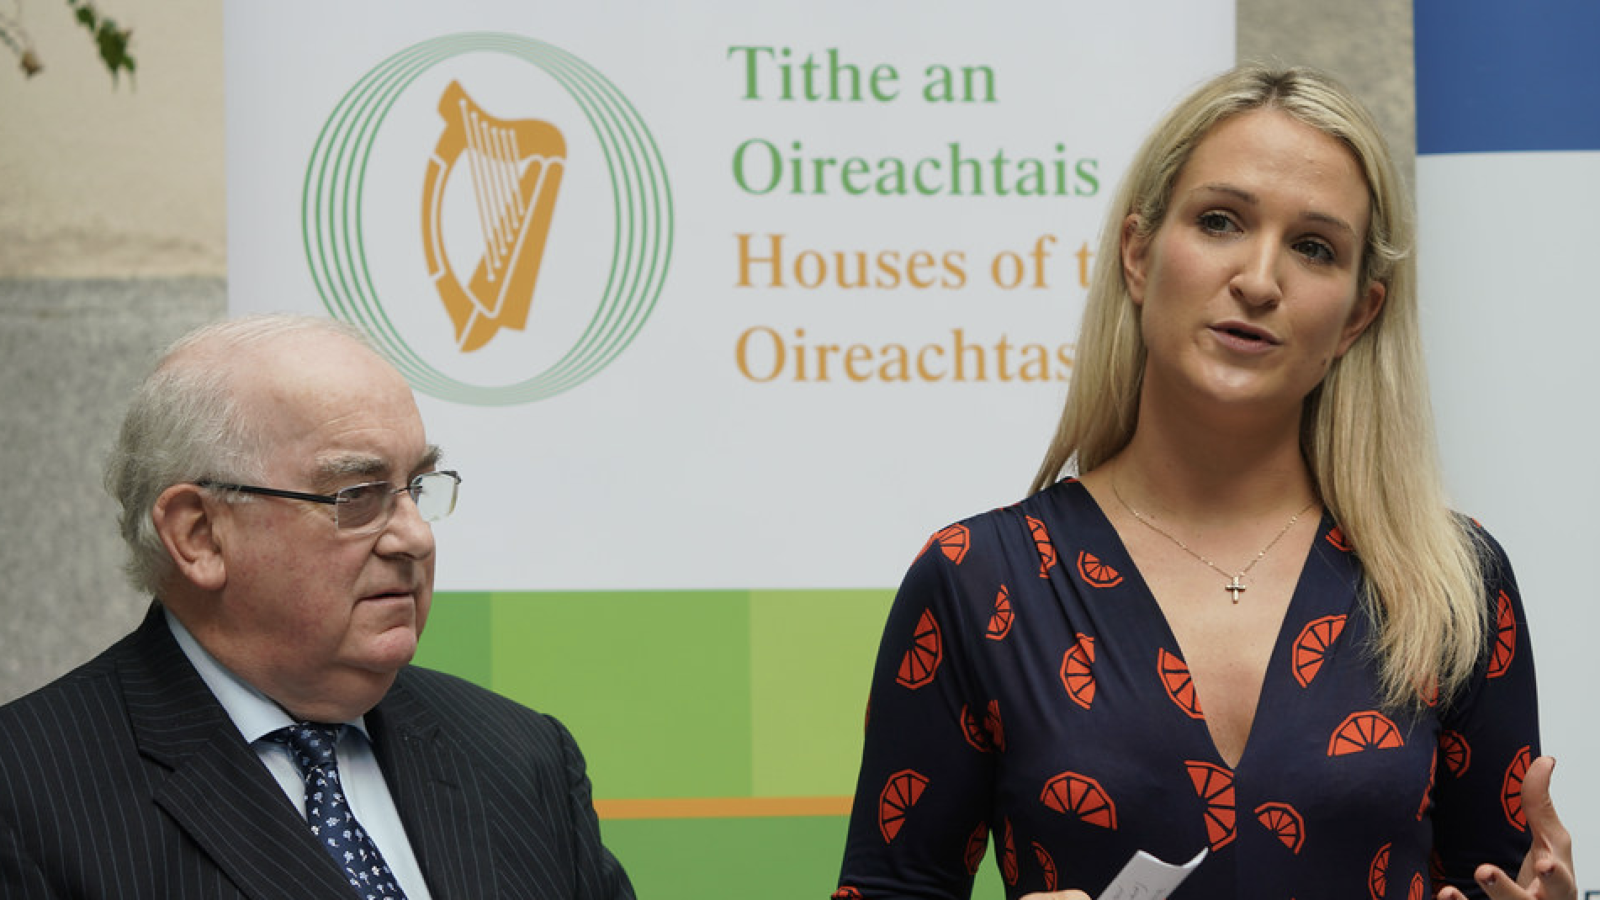 Helen McEntee stands on a stage talking, next to a male Irish official.